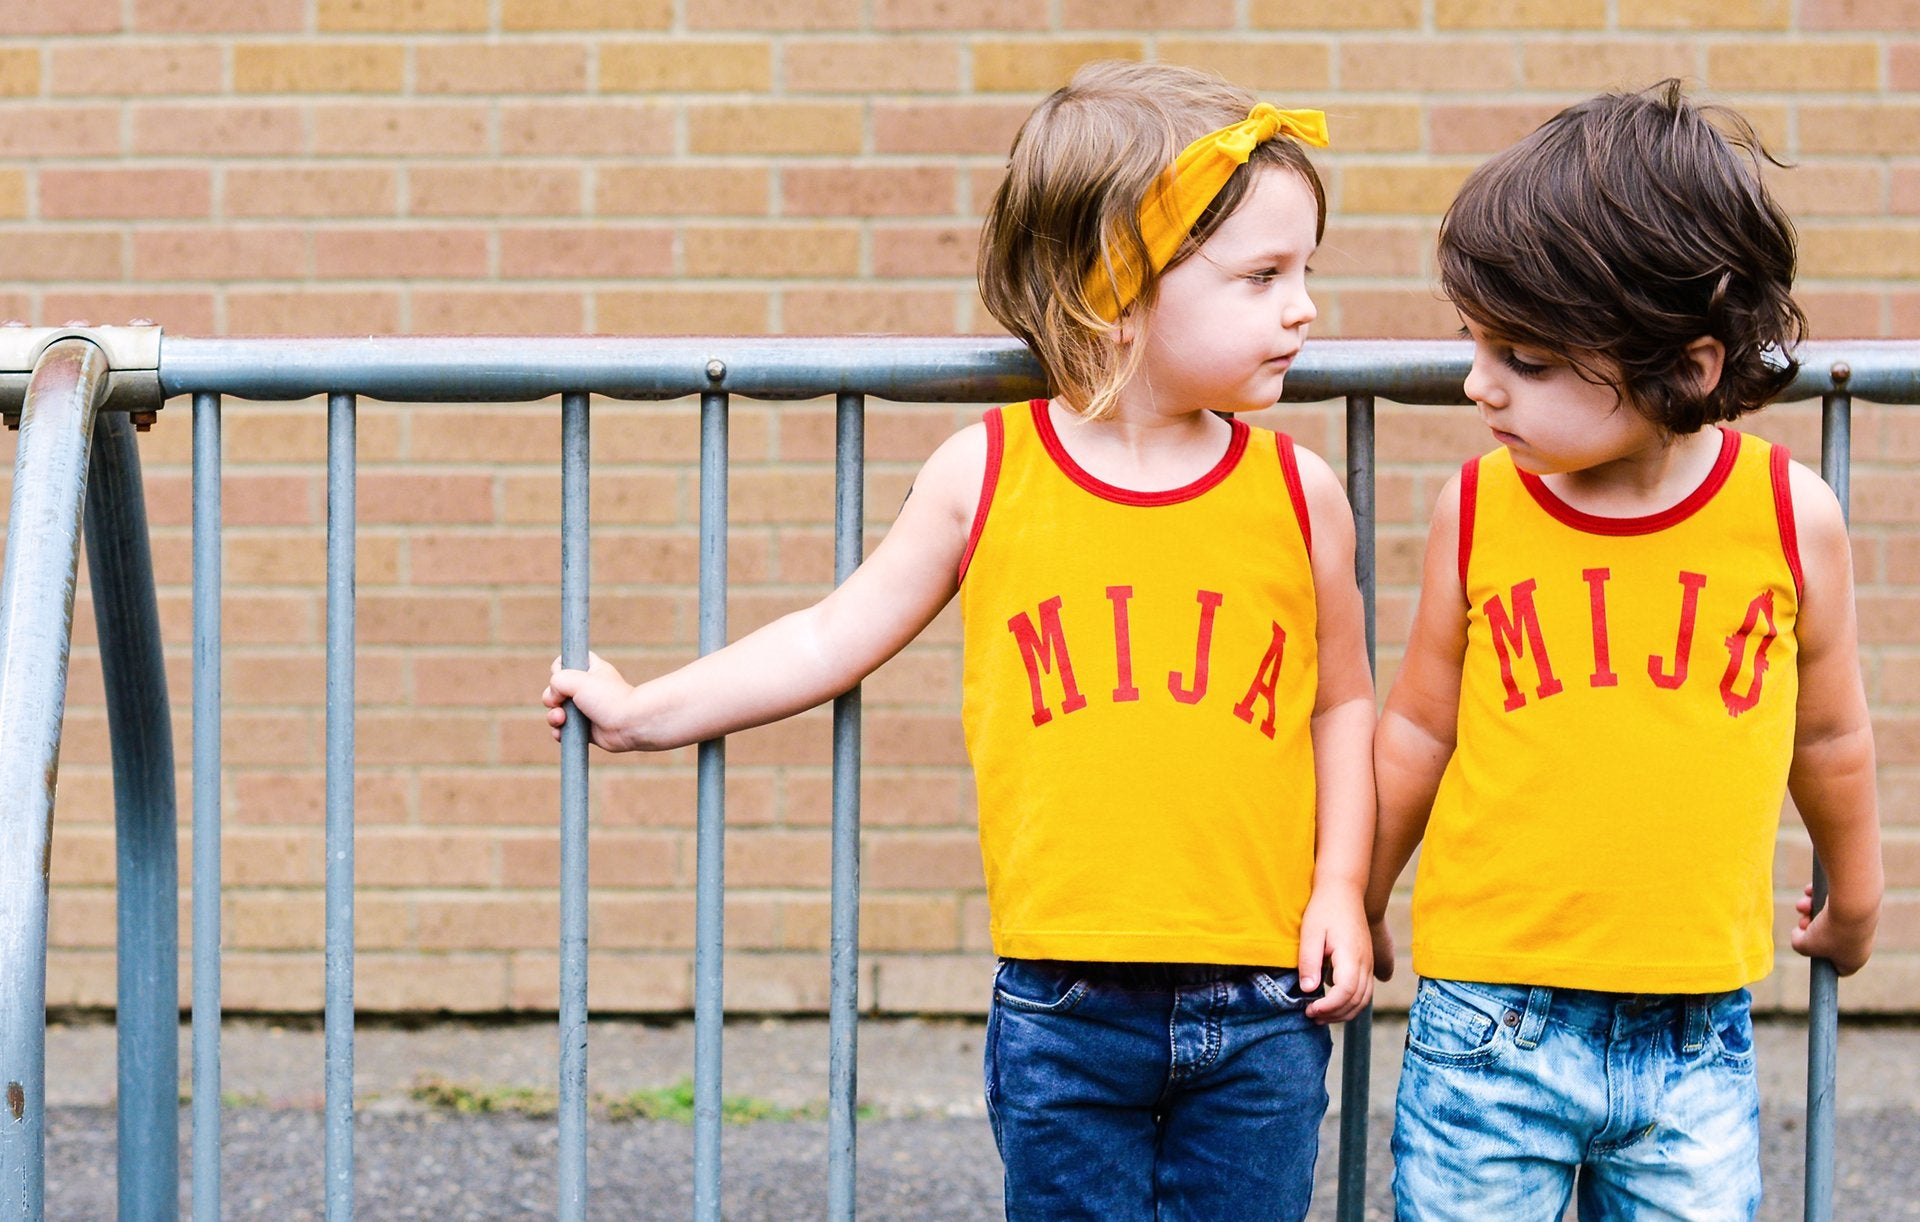 Mijo + Mija by Hatch For Kids